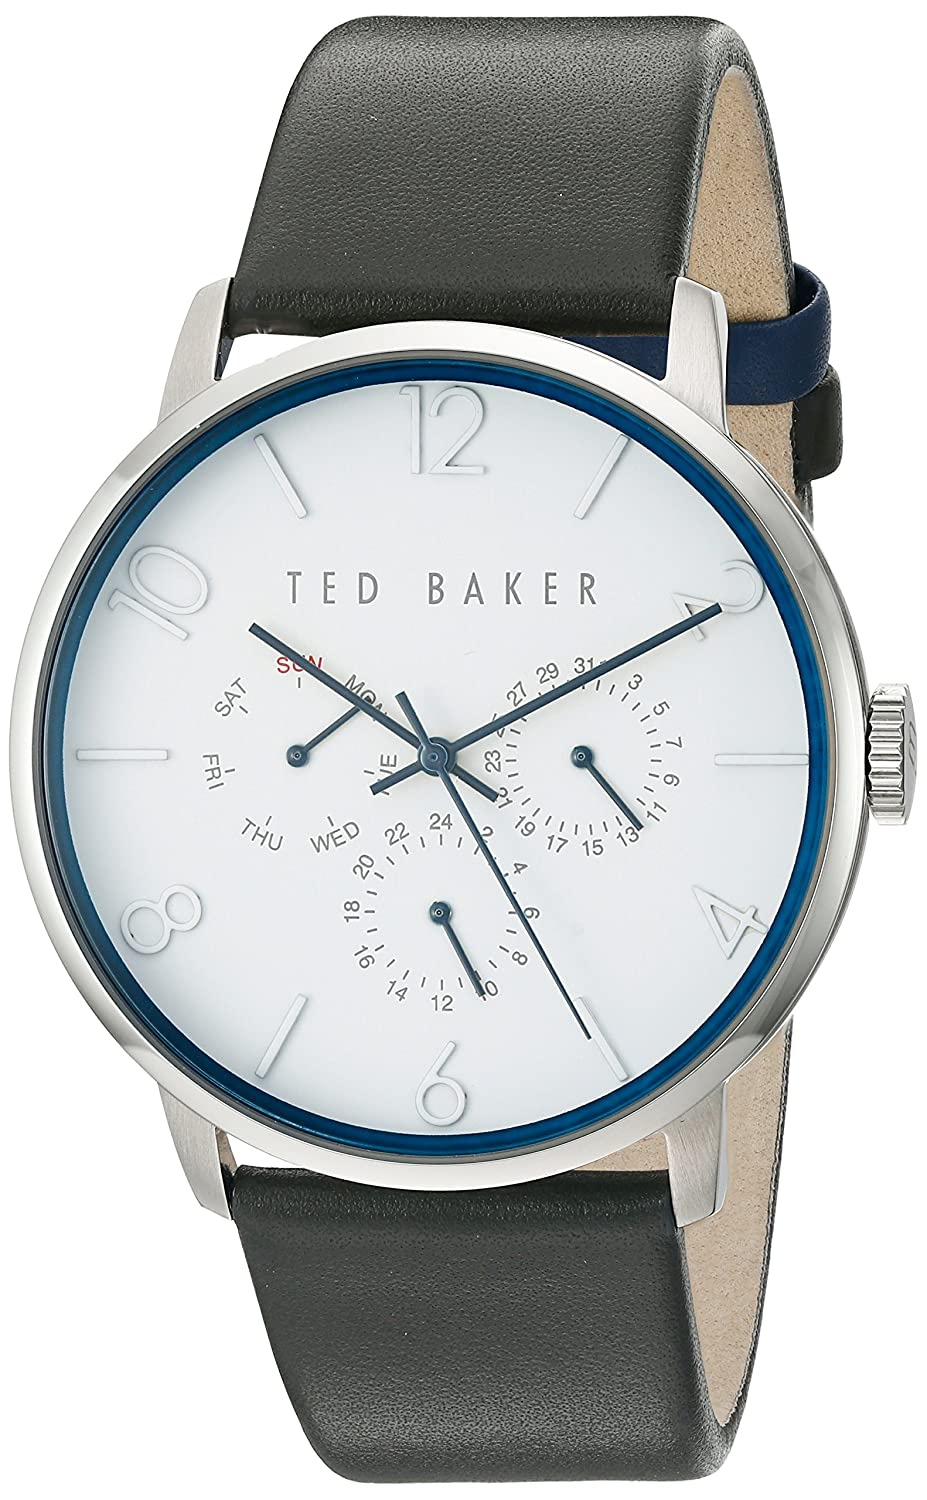 Amazon.com: Ted Baker Mens Smart Casual Quartz Stainless Steel and Leather Dress Watch, Color:Grey (Model: 10029567): Ted Baker: Watches